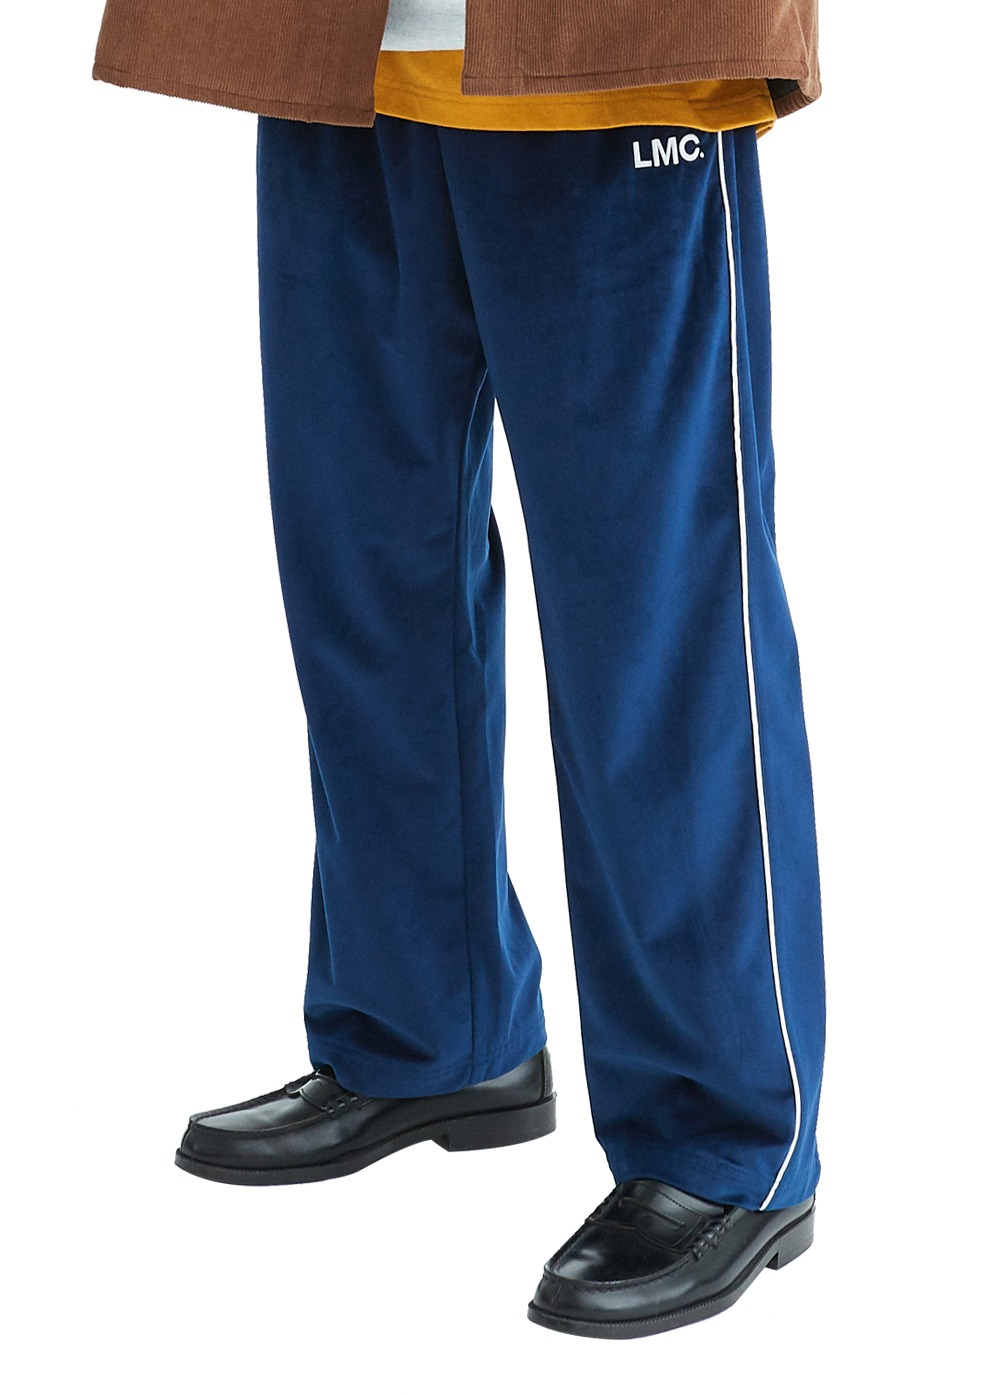 LMC VELOUR TRACK PANTS navy